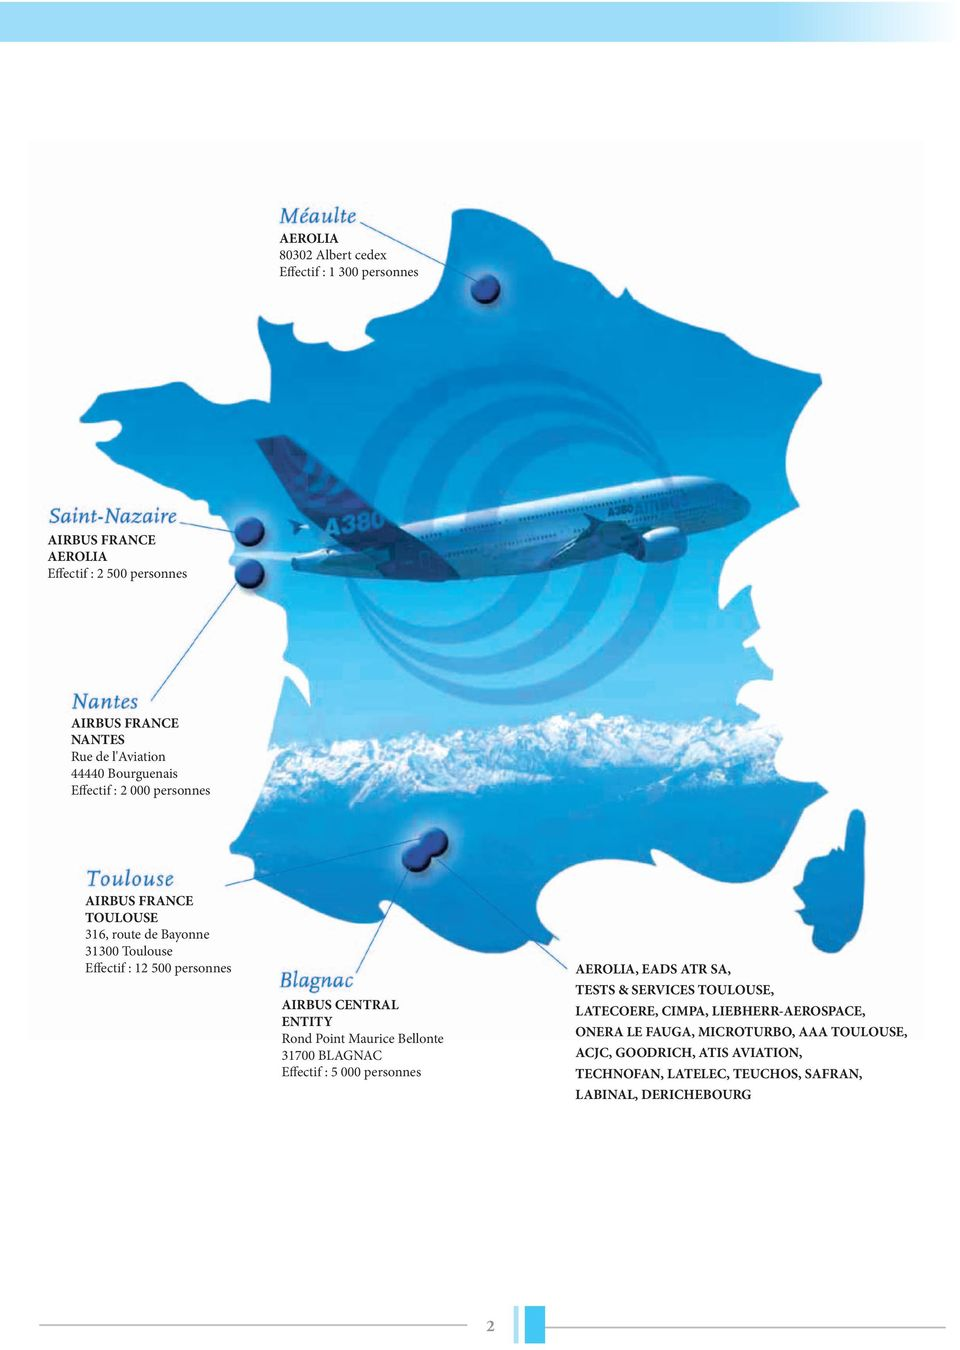 CENTRAL ENTITY Rond Point Maurice Bellonte 31700 BLAGNAC Effectif : 5 000 personnes AEROLIA, EADS ATR SA, TESTS & SERVICES TOULOUSE, LATECOERE,